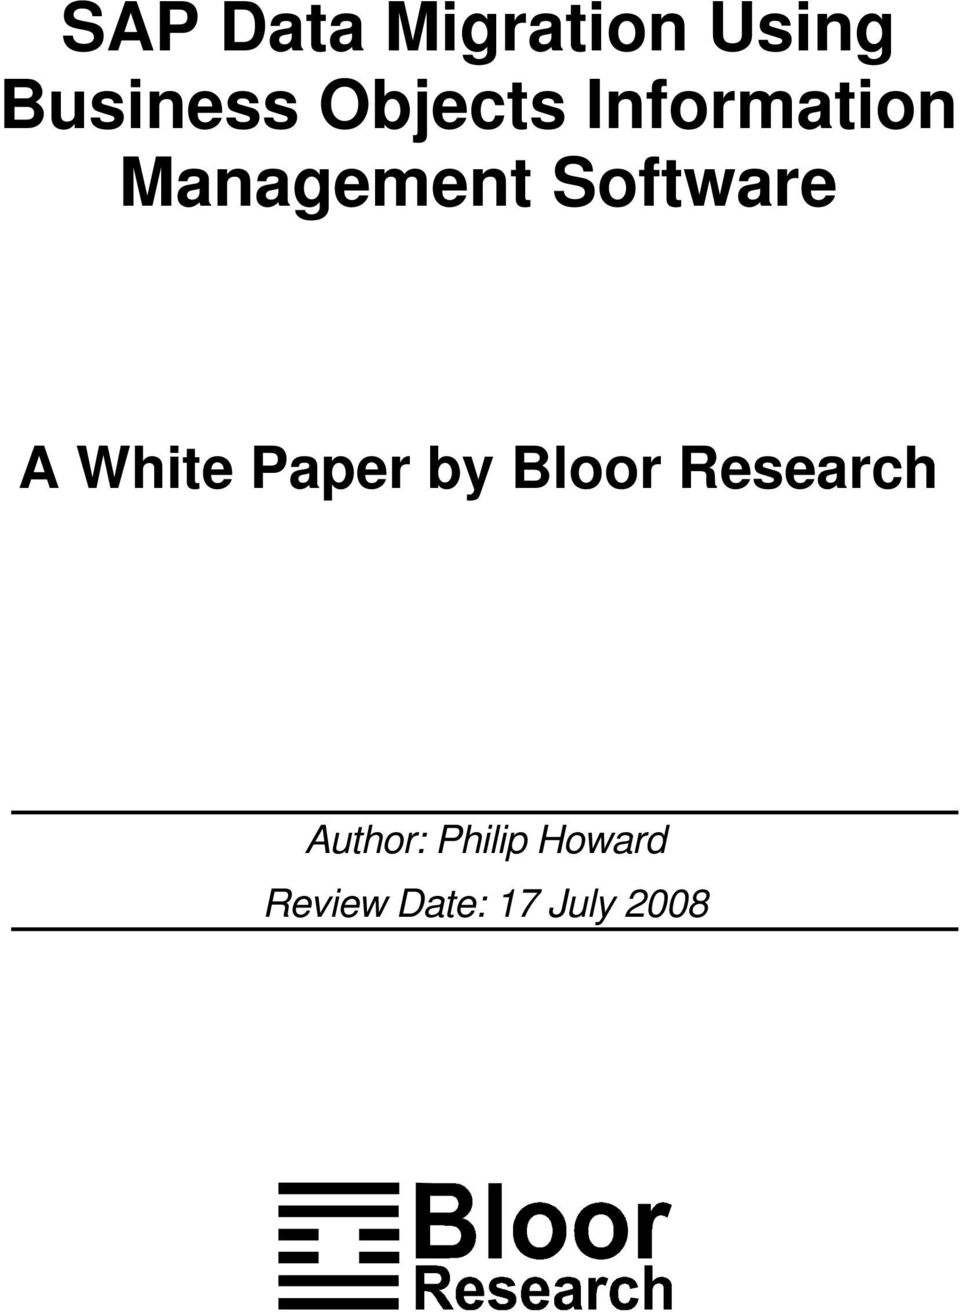 A White Paper by Blr Research Authr: